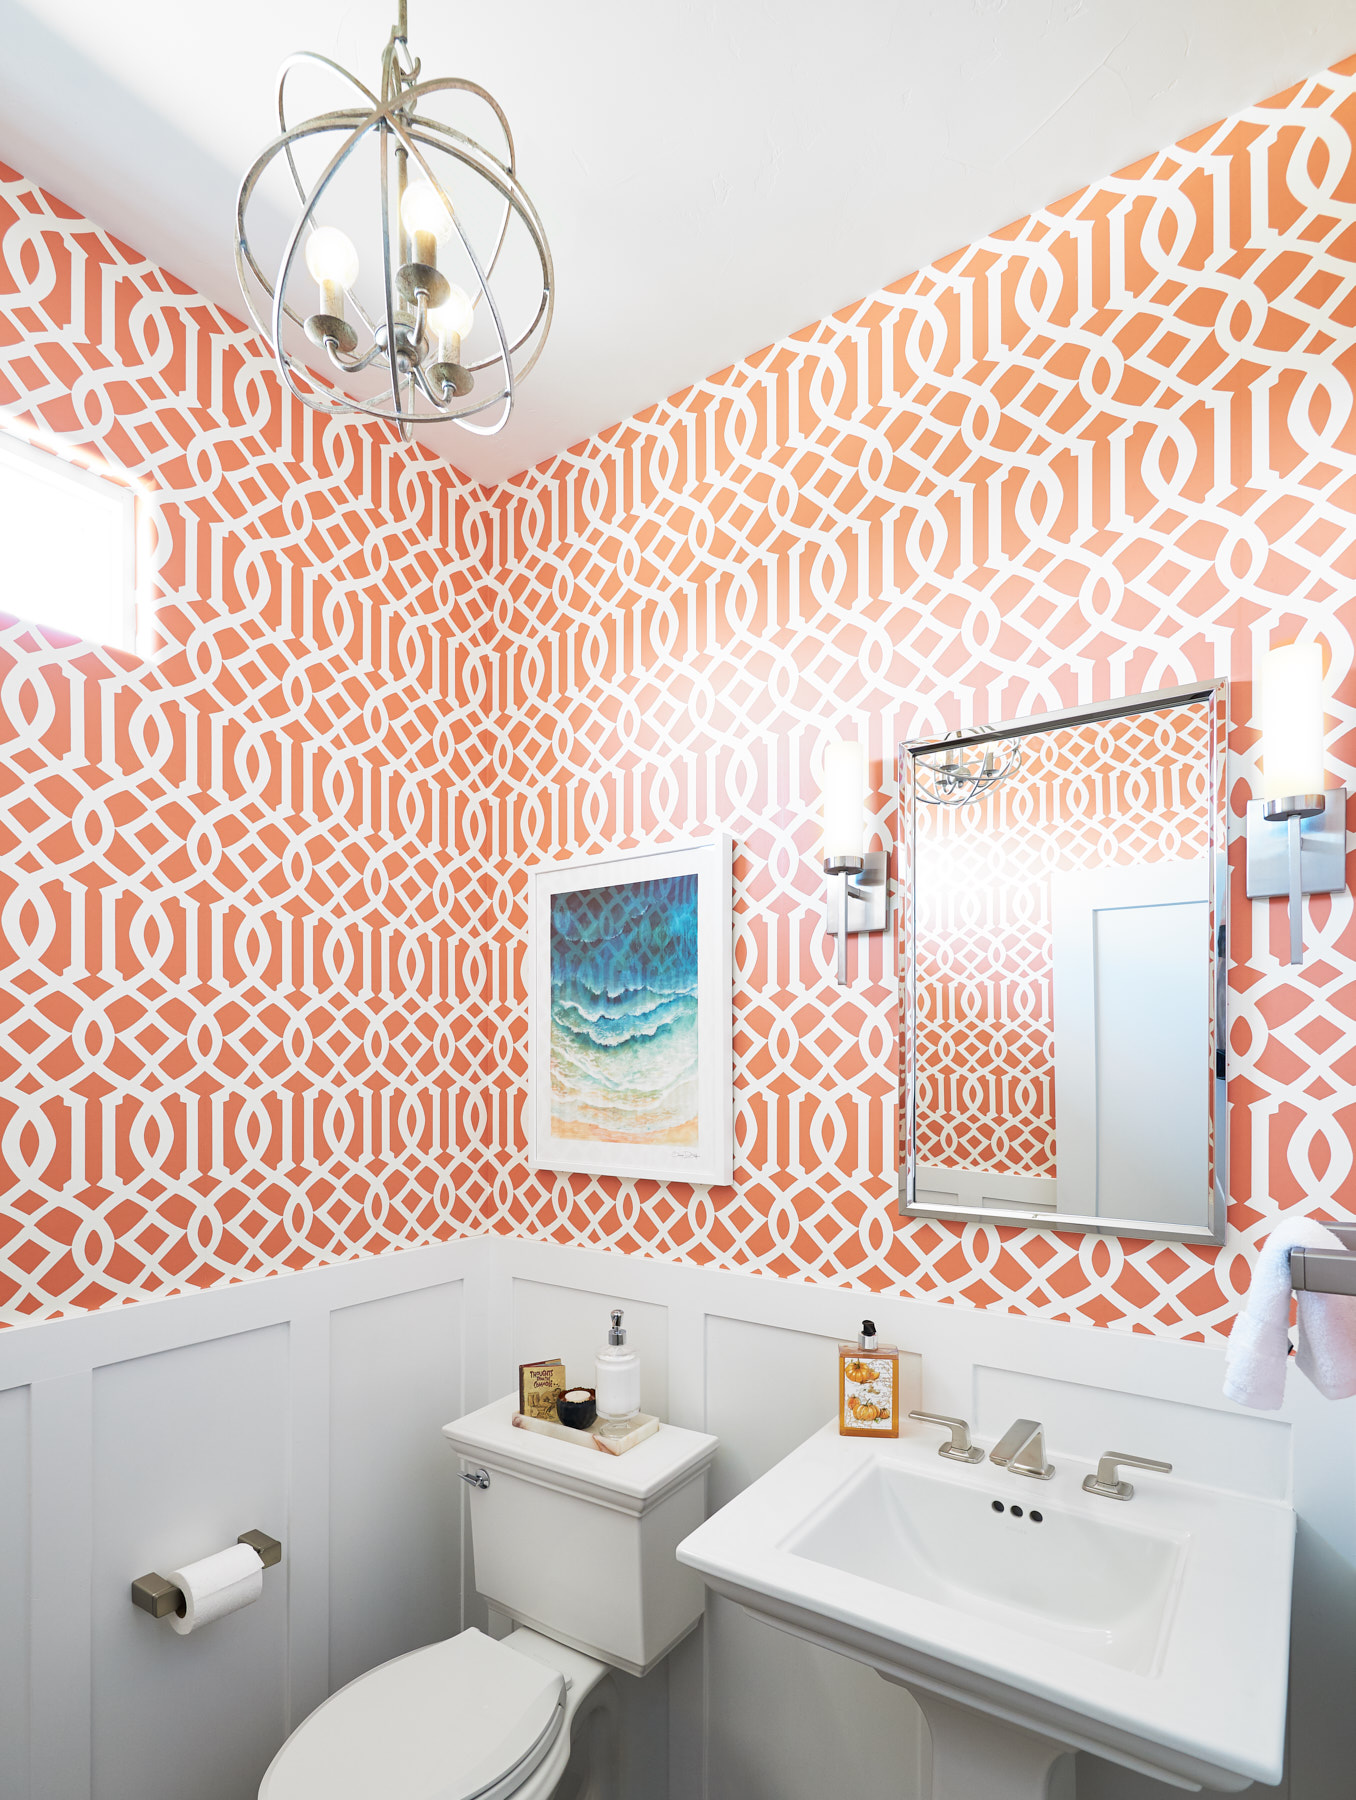 Perfect amount of color orange in interior powder bath 328 Design Group Littleton, CO